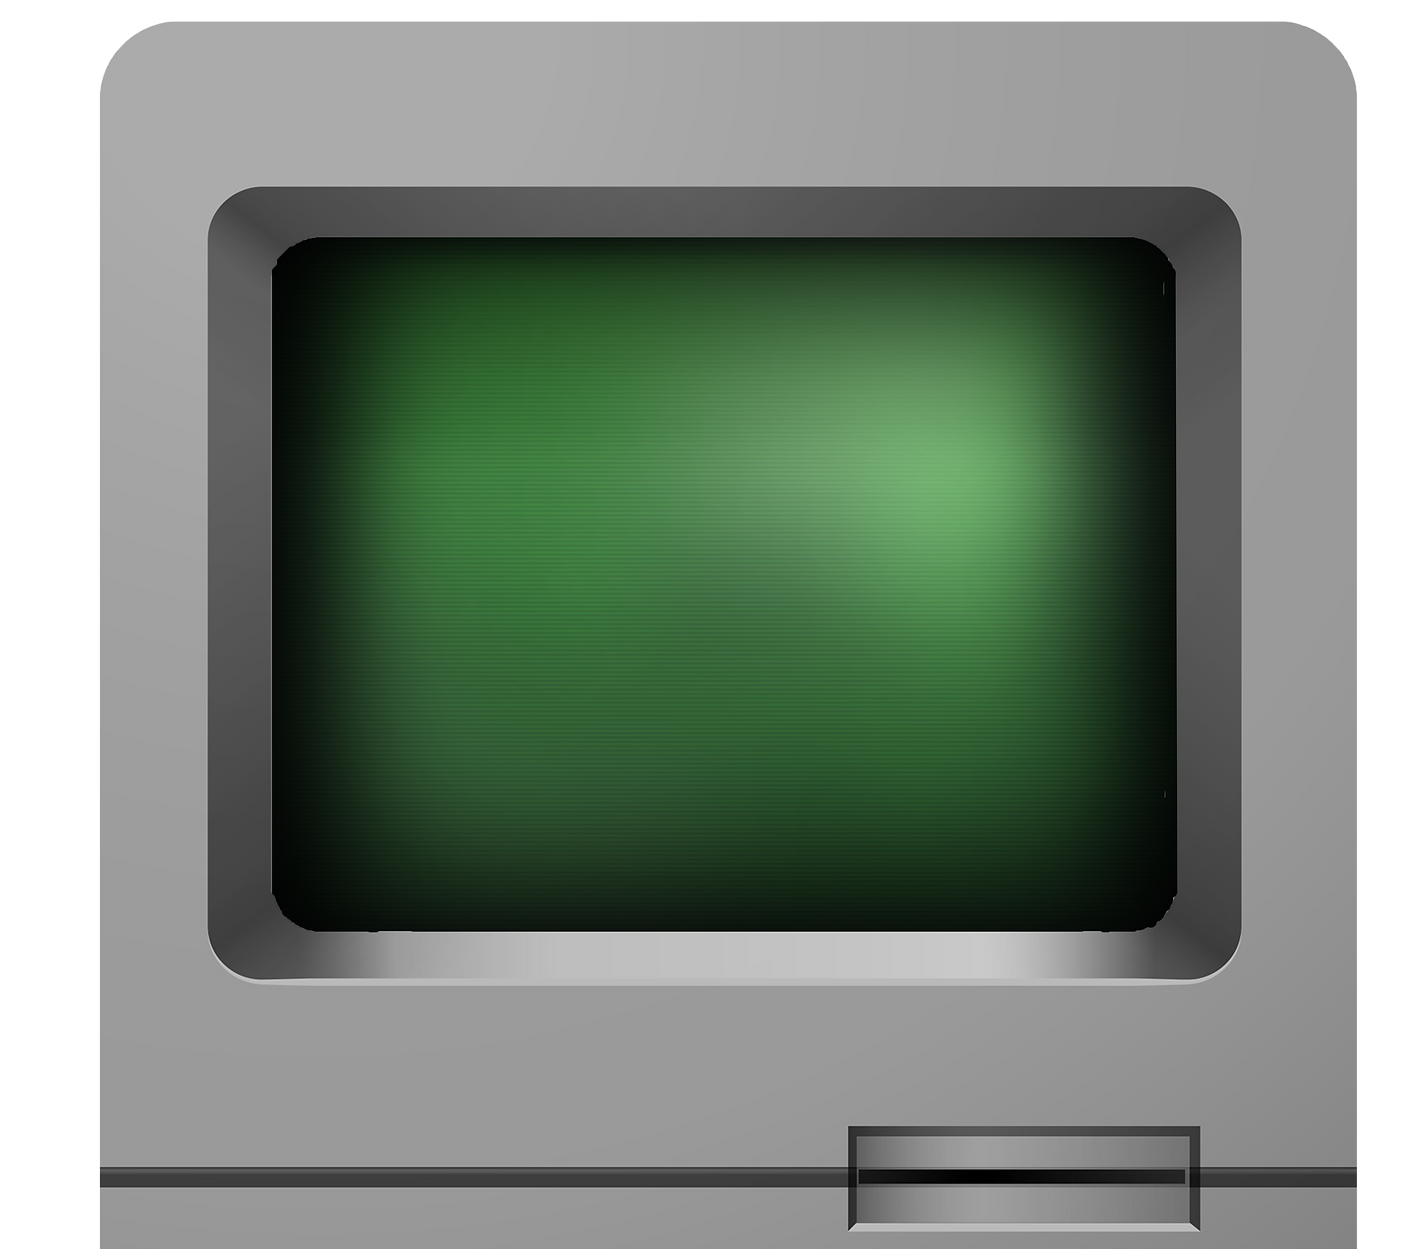 computerscreen copy.png